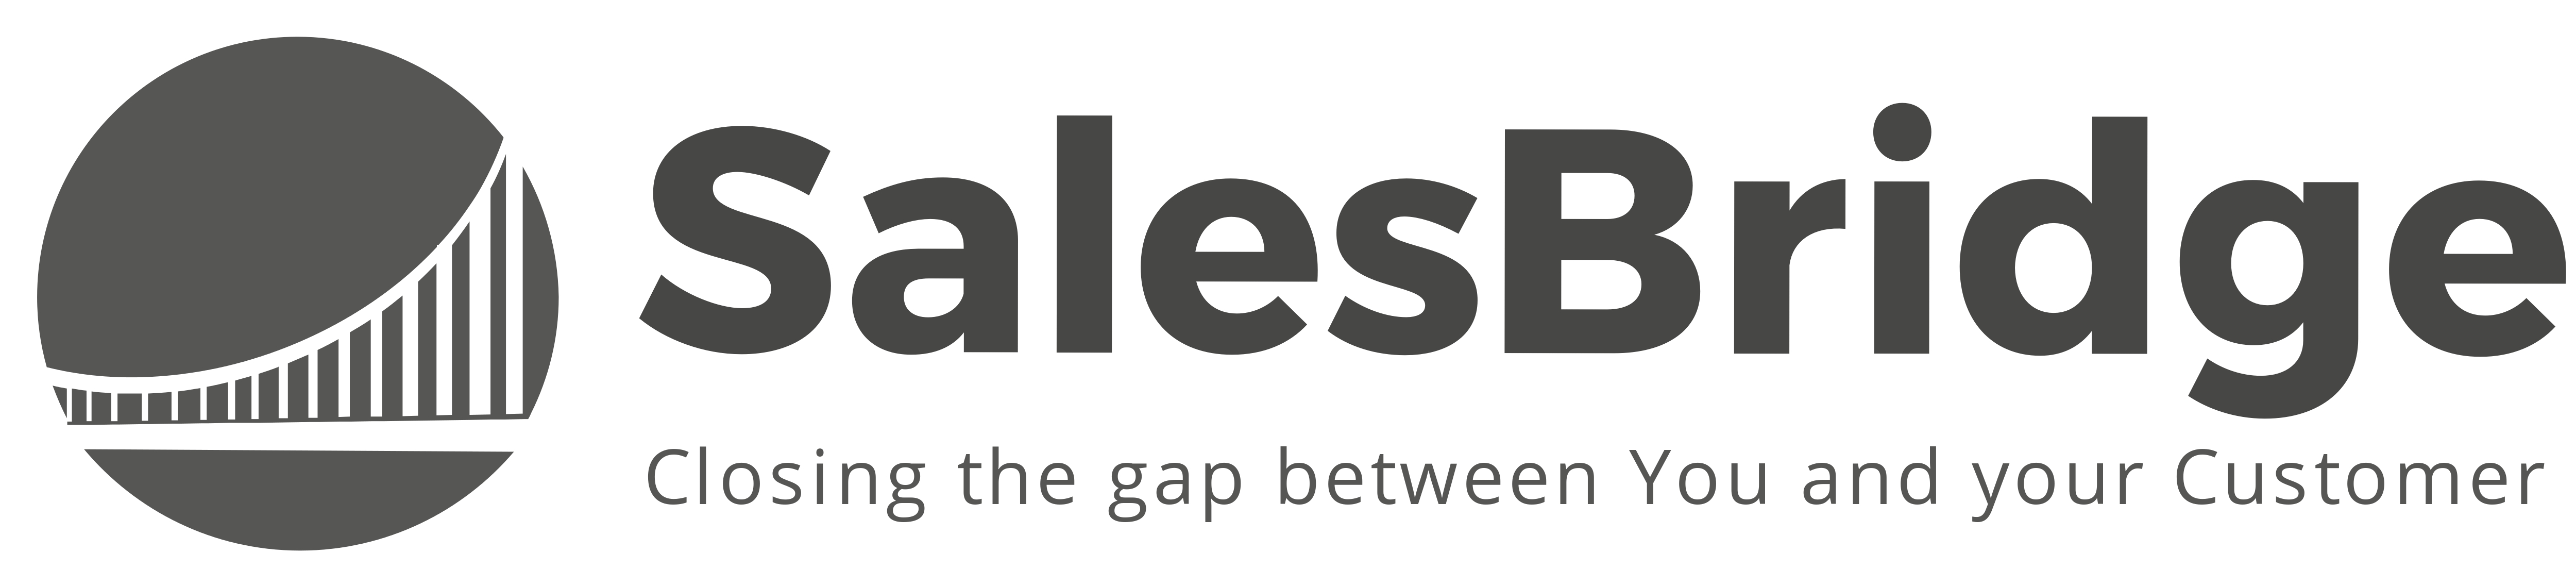 Salesbridge-logo